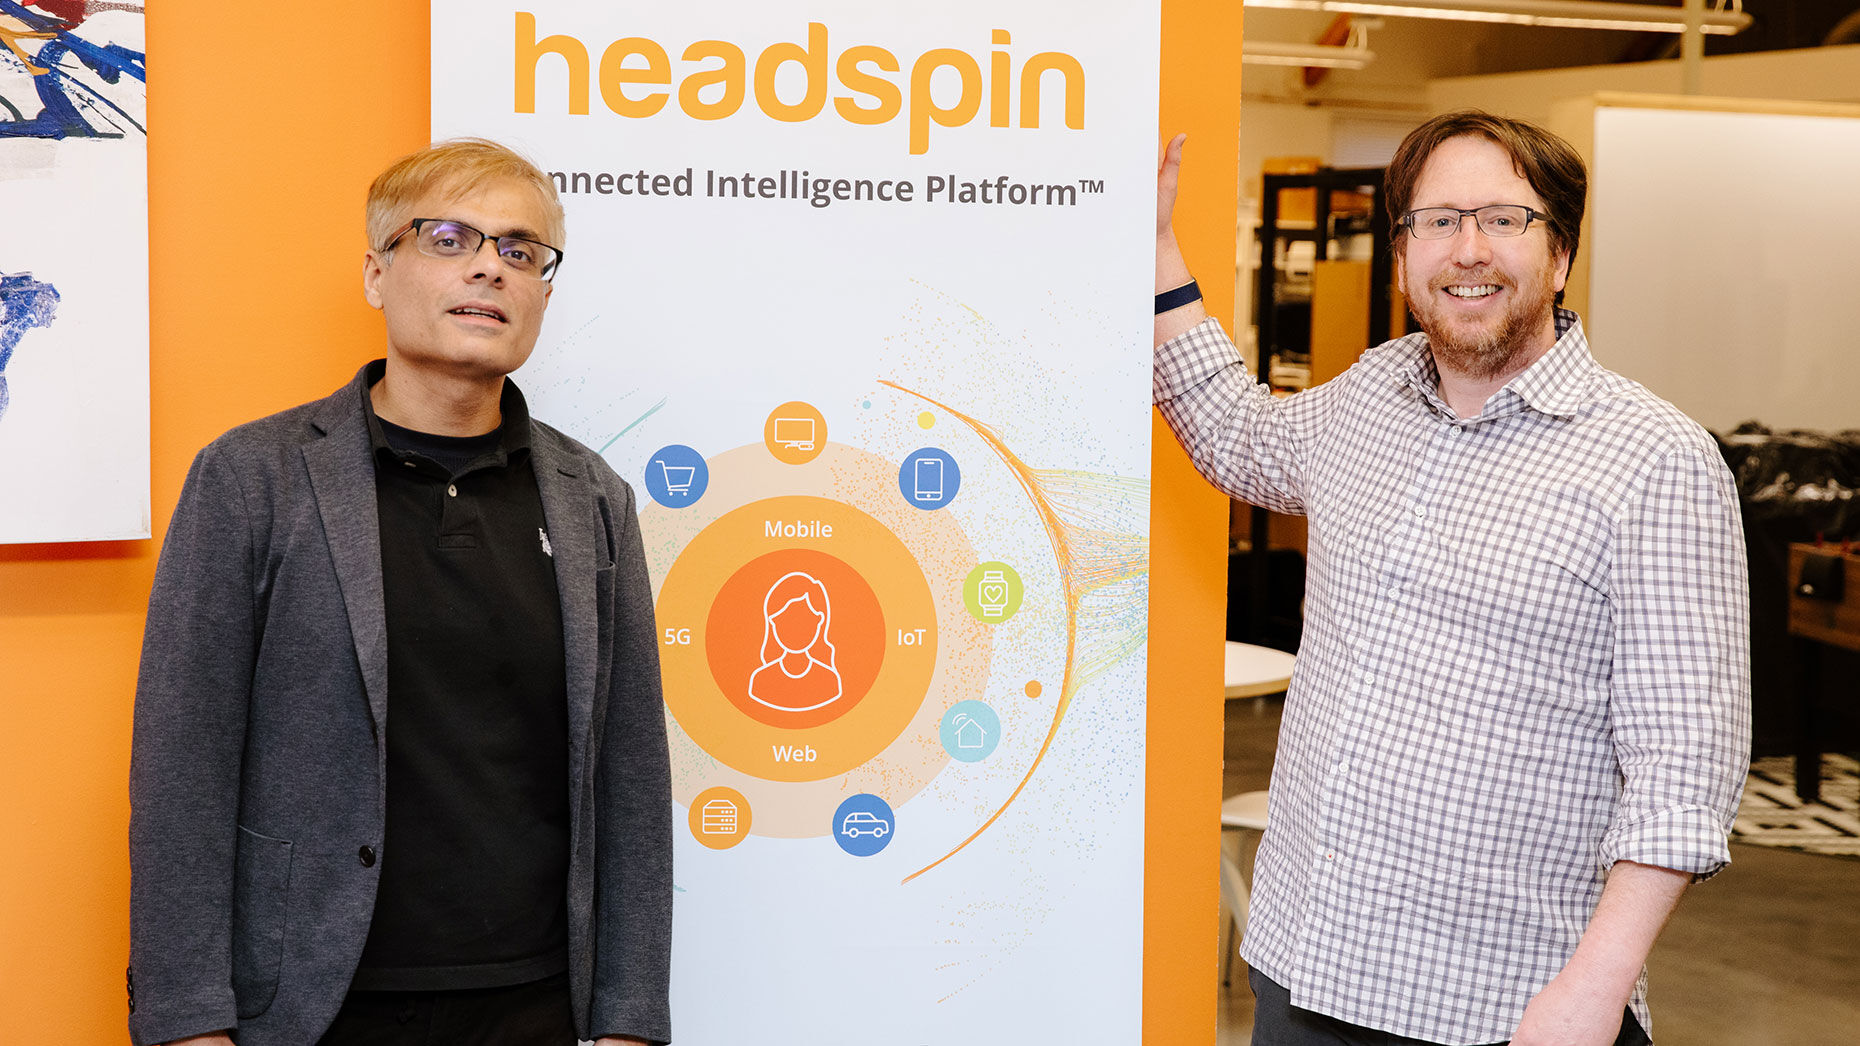 HeadSpin founders Manish Lachwani and Brien Colwell. Photo courtesy of Headspin.